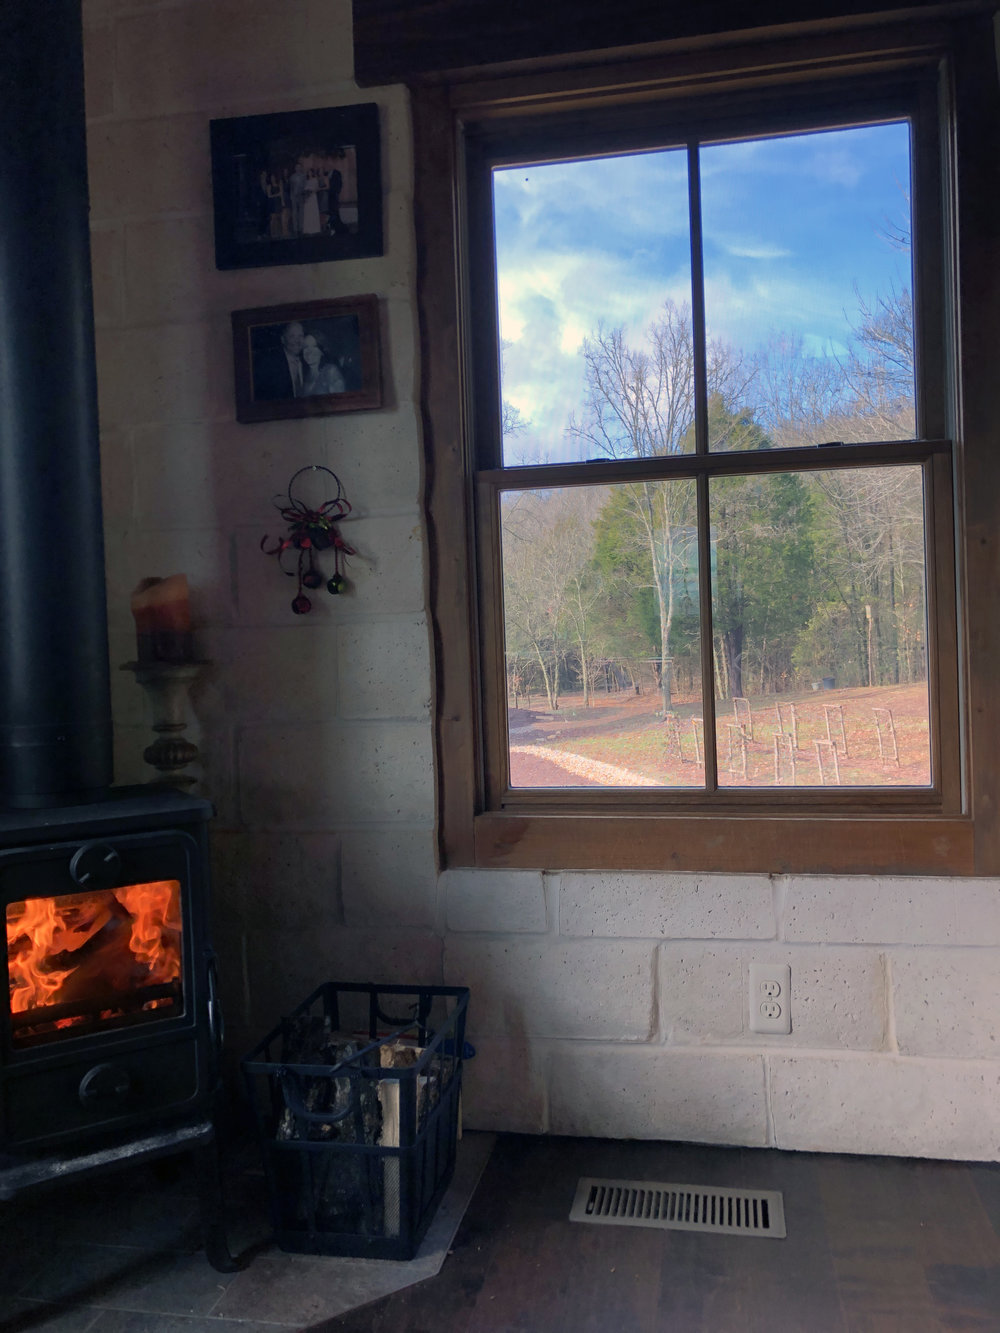 Wood-Stove-Window-Wedding-Path.jpg